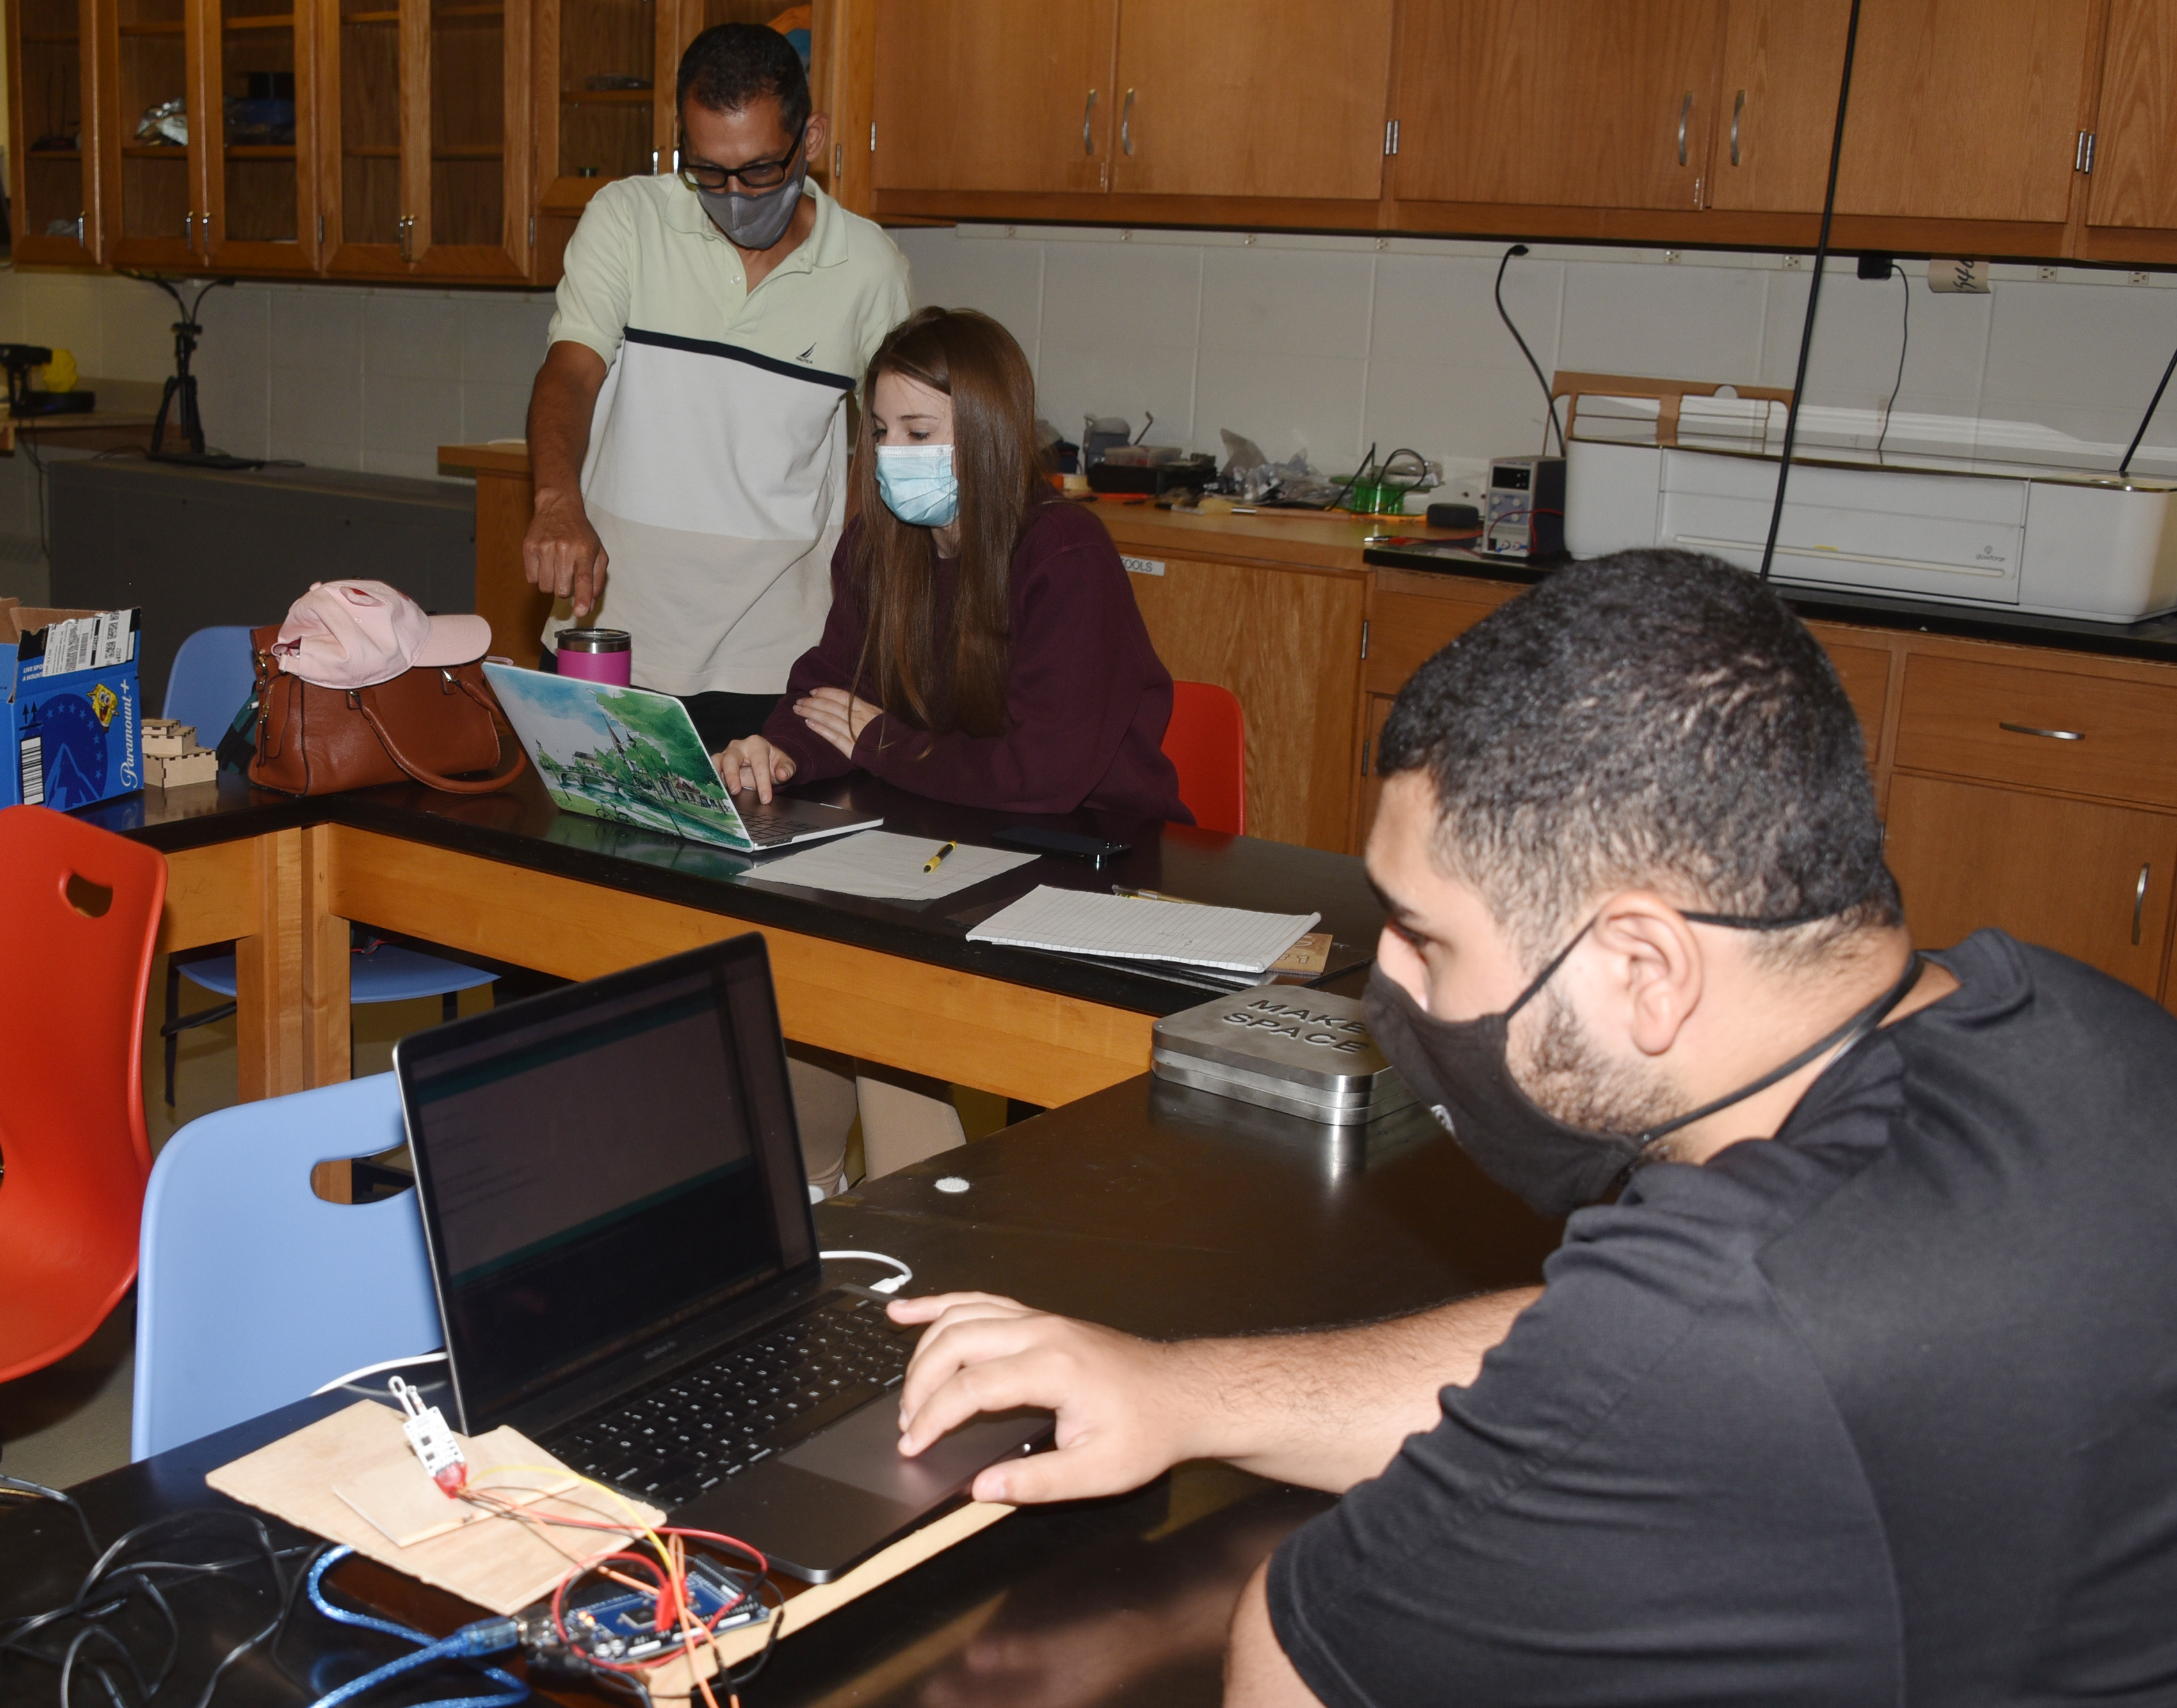 (L-r) Dr. Marwan Rasamny provides guidance to Sabrina Kruger and Abdullah Al-Rubaye in the Maker Space.